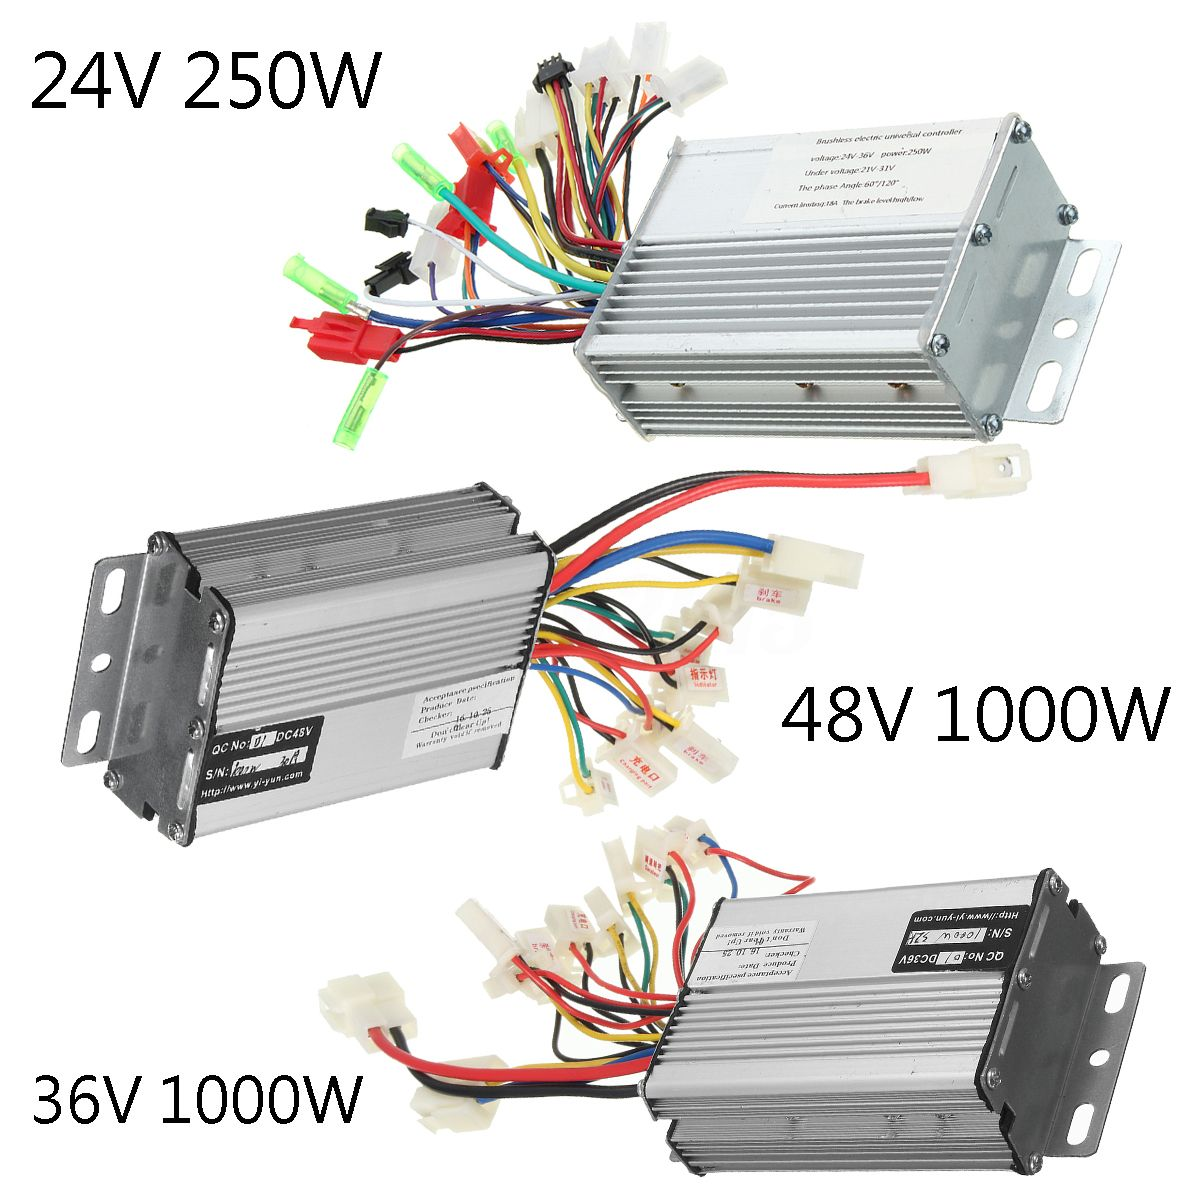 24v electric bike controller wiring diagram 1984 chevy c10 36v 48v 250w 1000w scooter speed